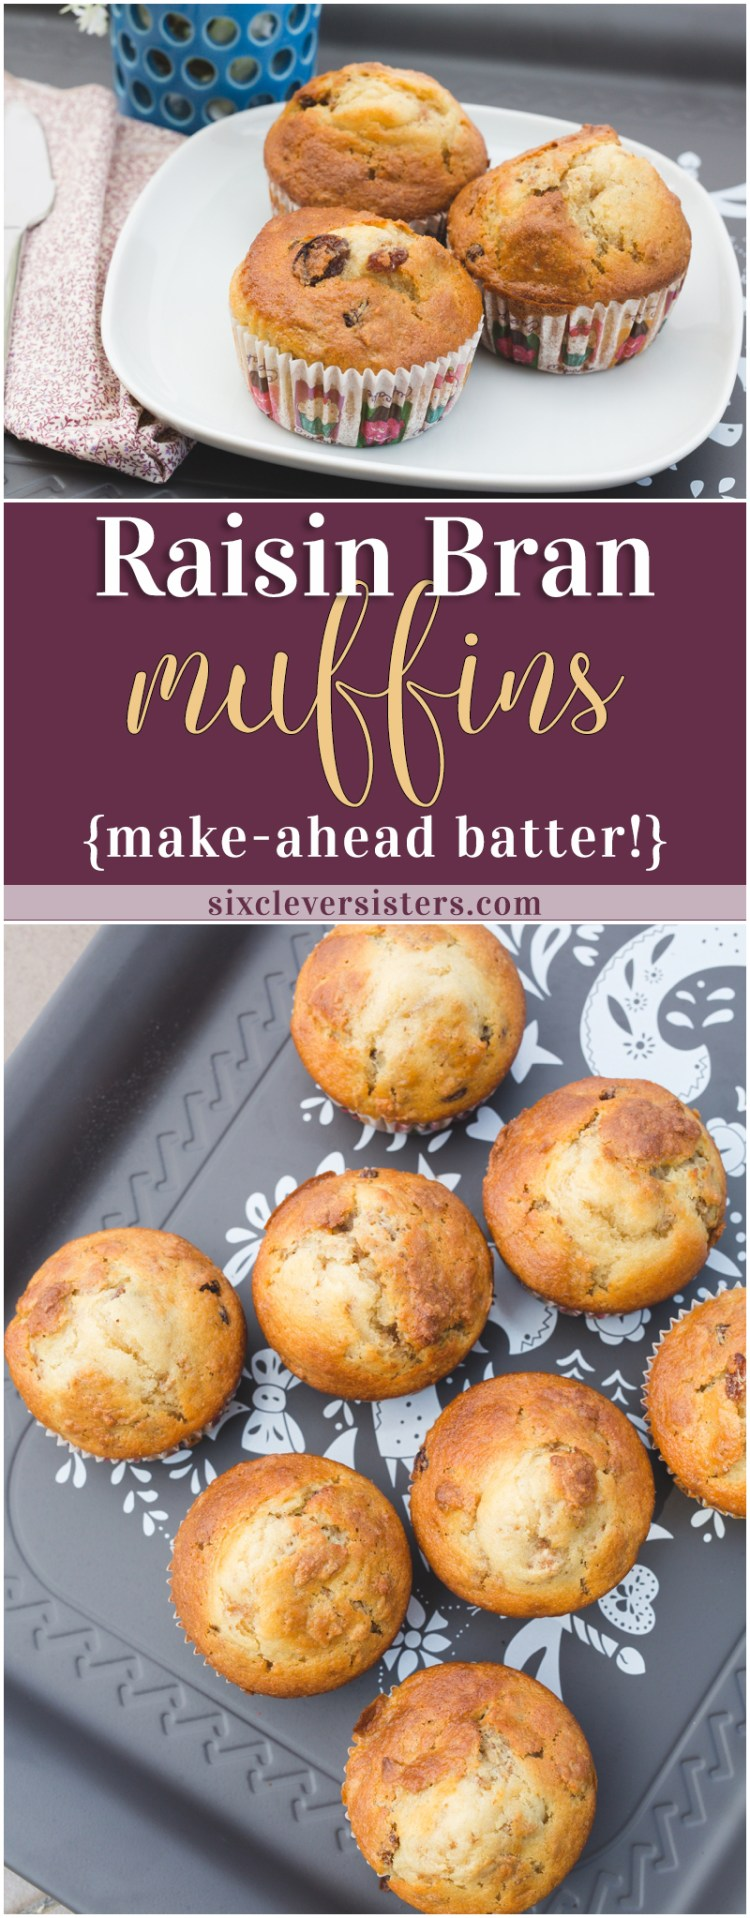 Raisin Bran Muffins | Raisin Bran | Quick Muffins | Breakfast Muffins | Make-Ahead | These muffins are great because it only takes 5 minutes to mix up a big recipe, and you can store the batter in your fridge for up to a month! Recipe on the Six Clever Sisters blog!